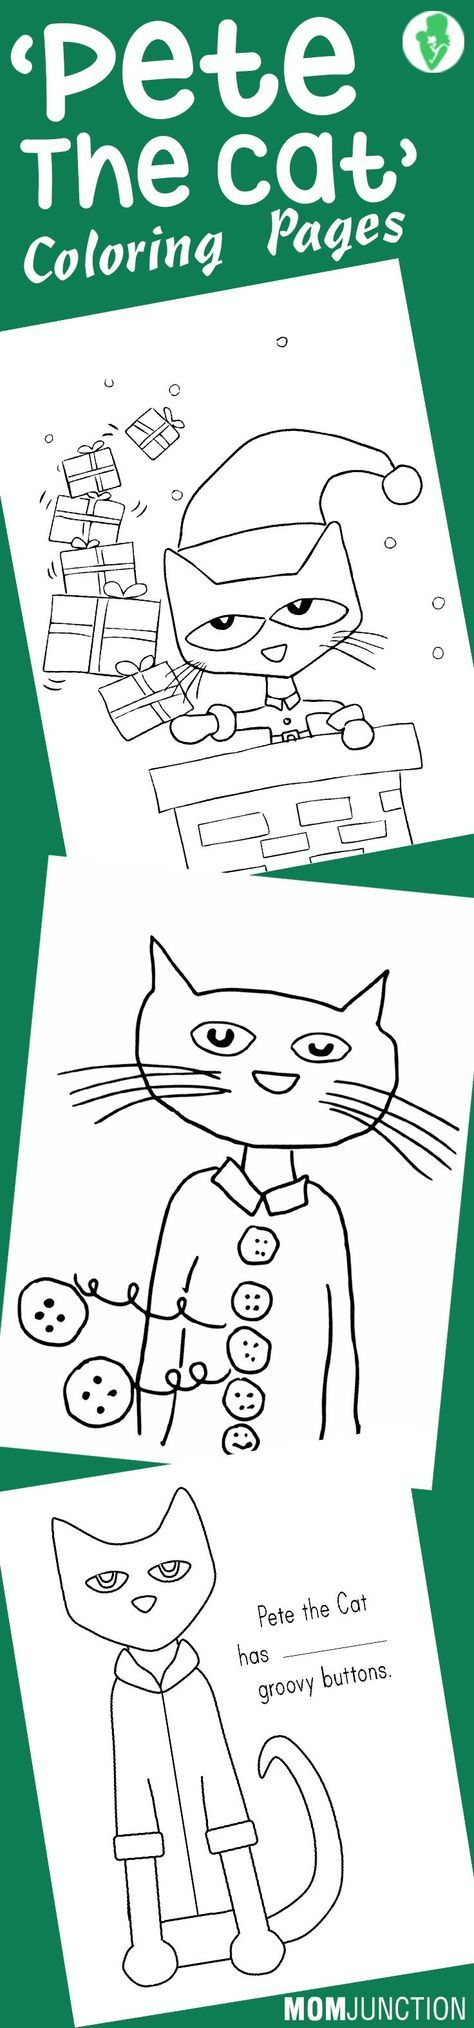 10 Best 'Pete The Cat' Coloring Pages For Your Little Ones